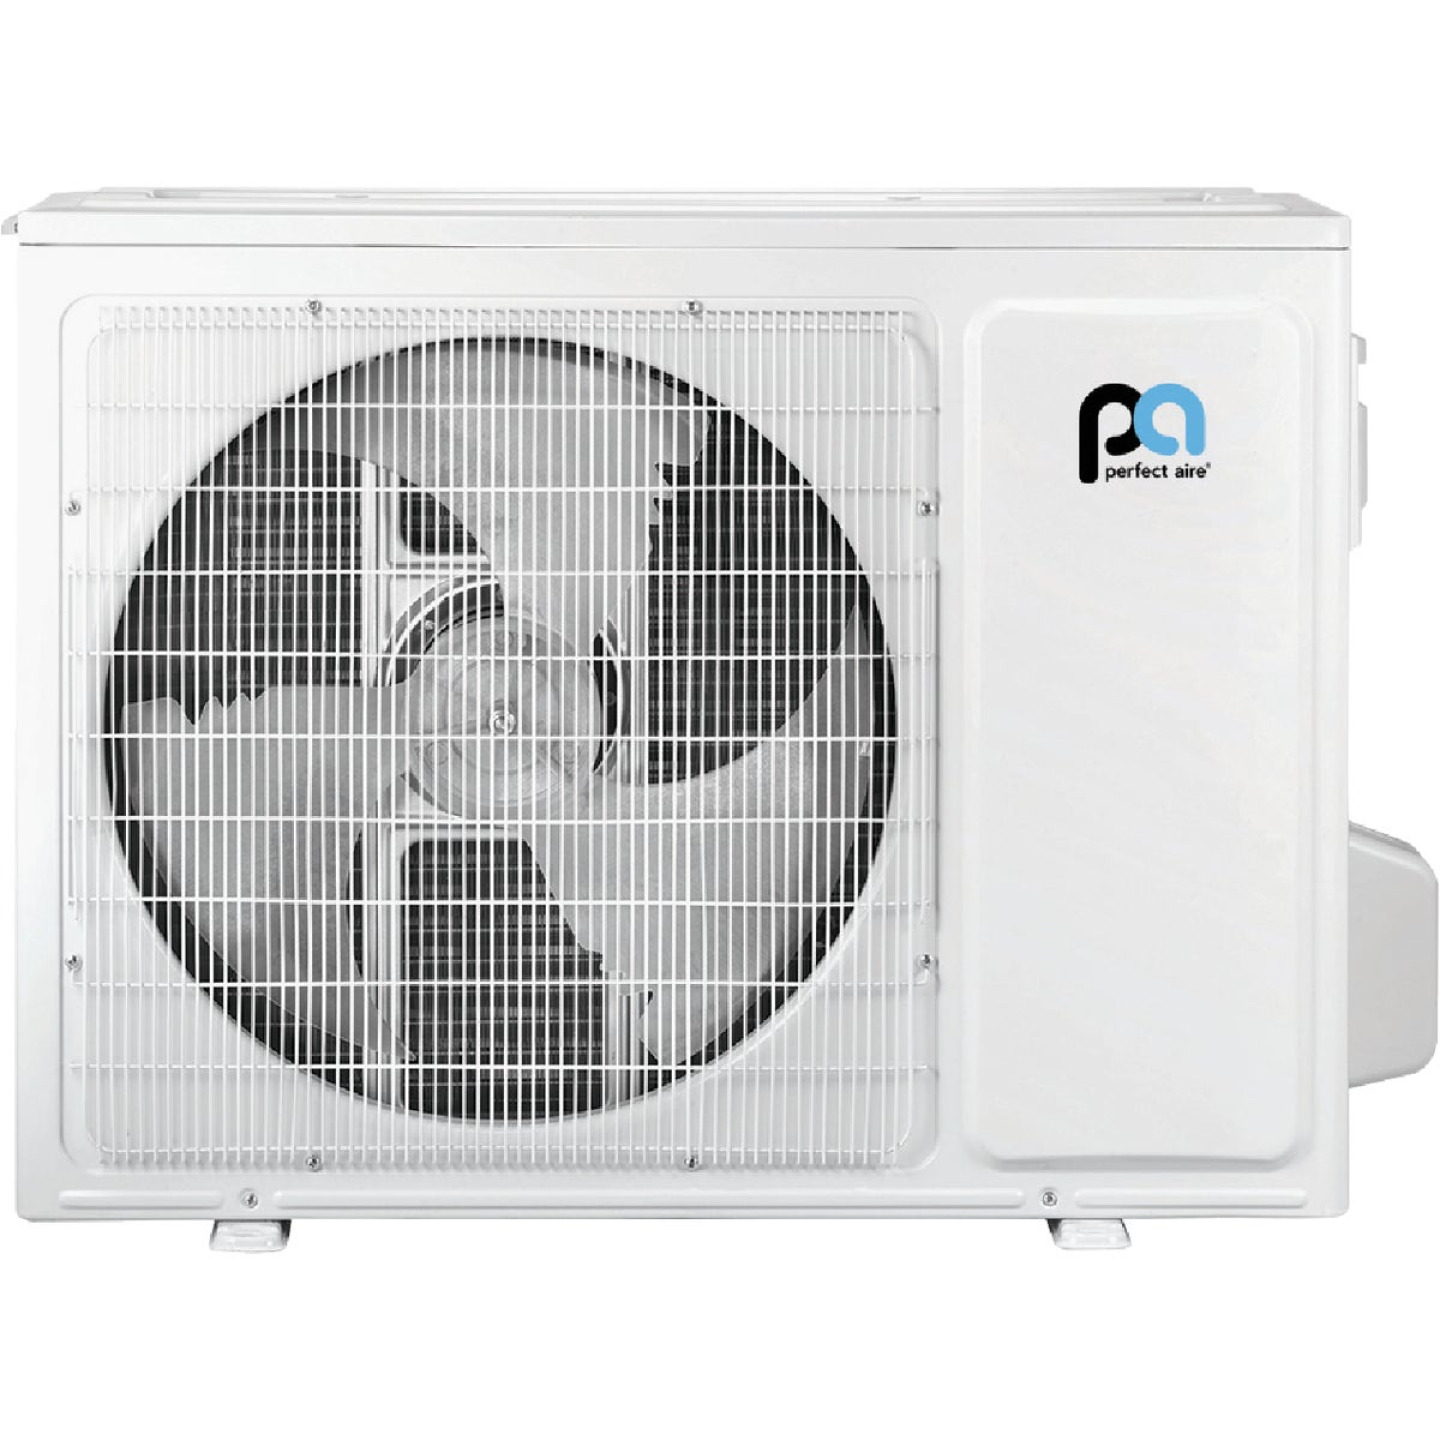 Perfect Aire Quick Connect 18,000 BTU 750 Sq. Ft. Mini-Split Room Air Conditioner with Heating Mode Image 1